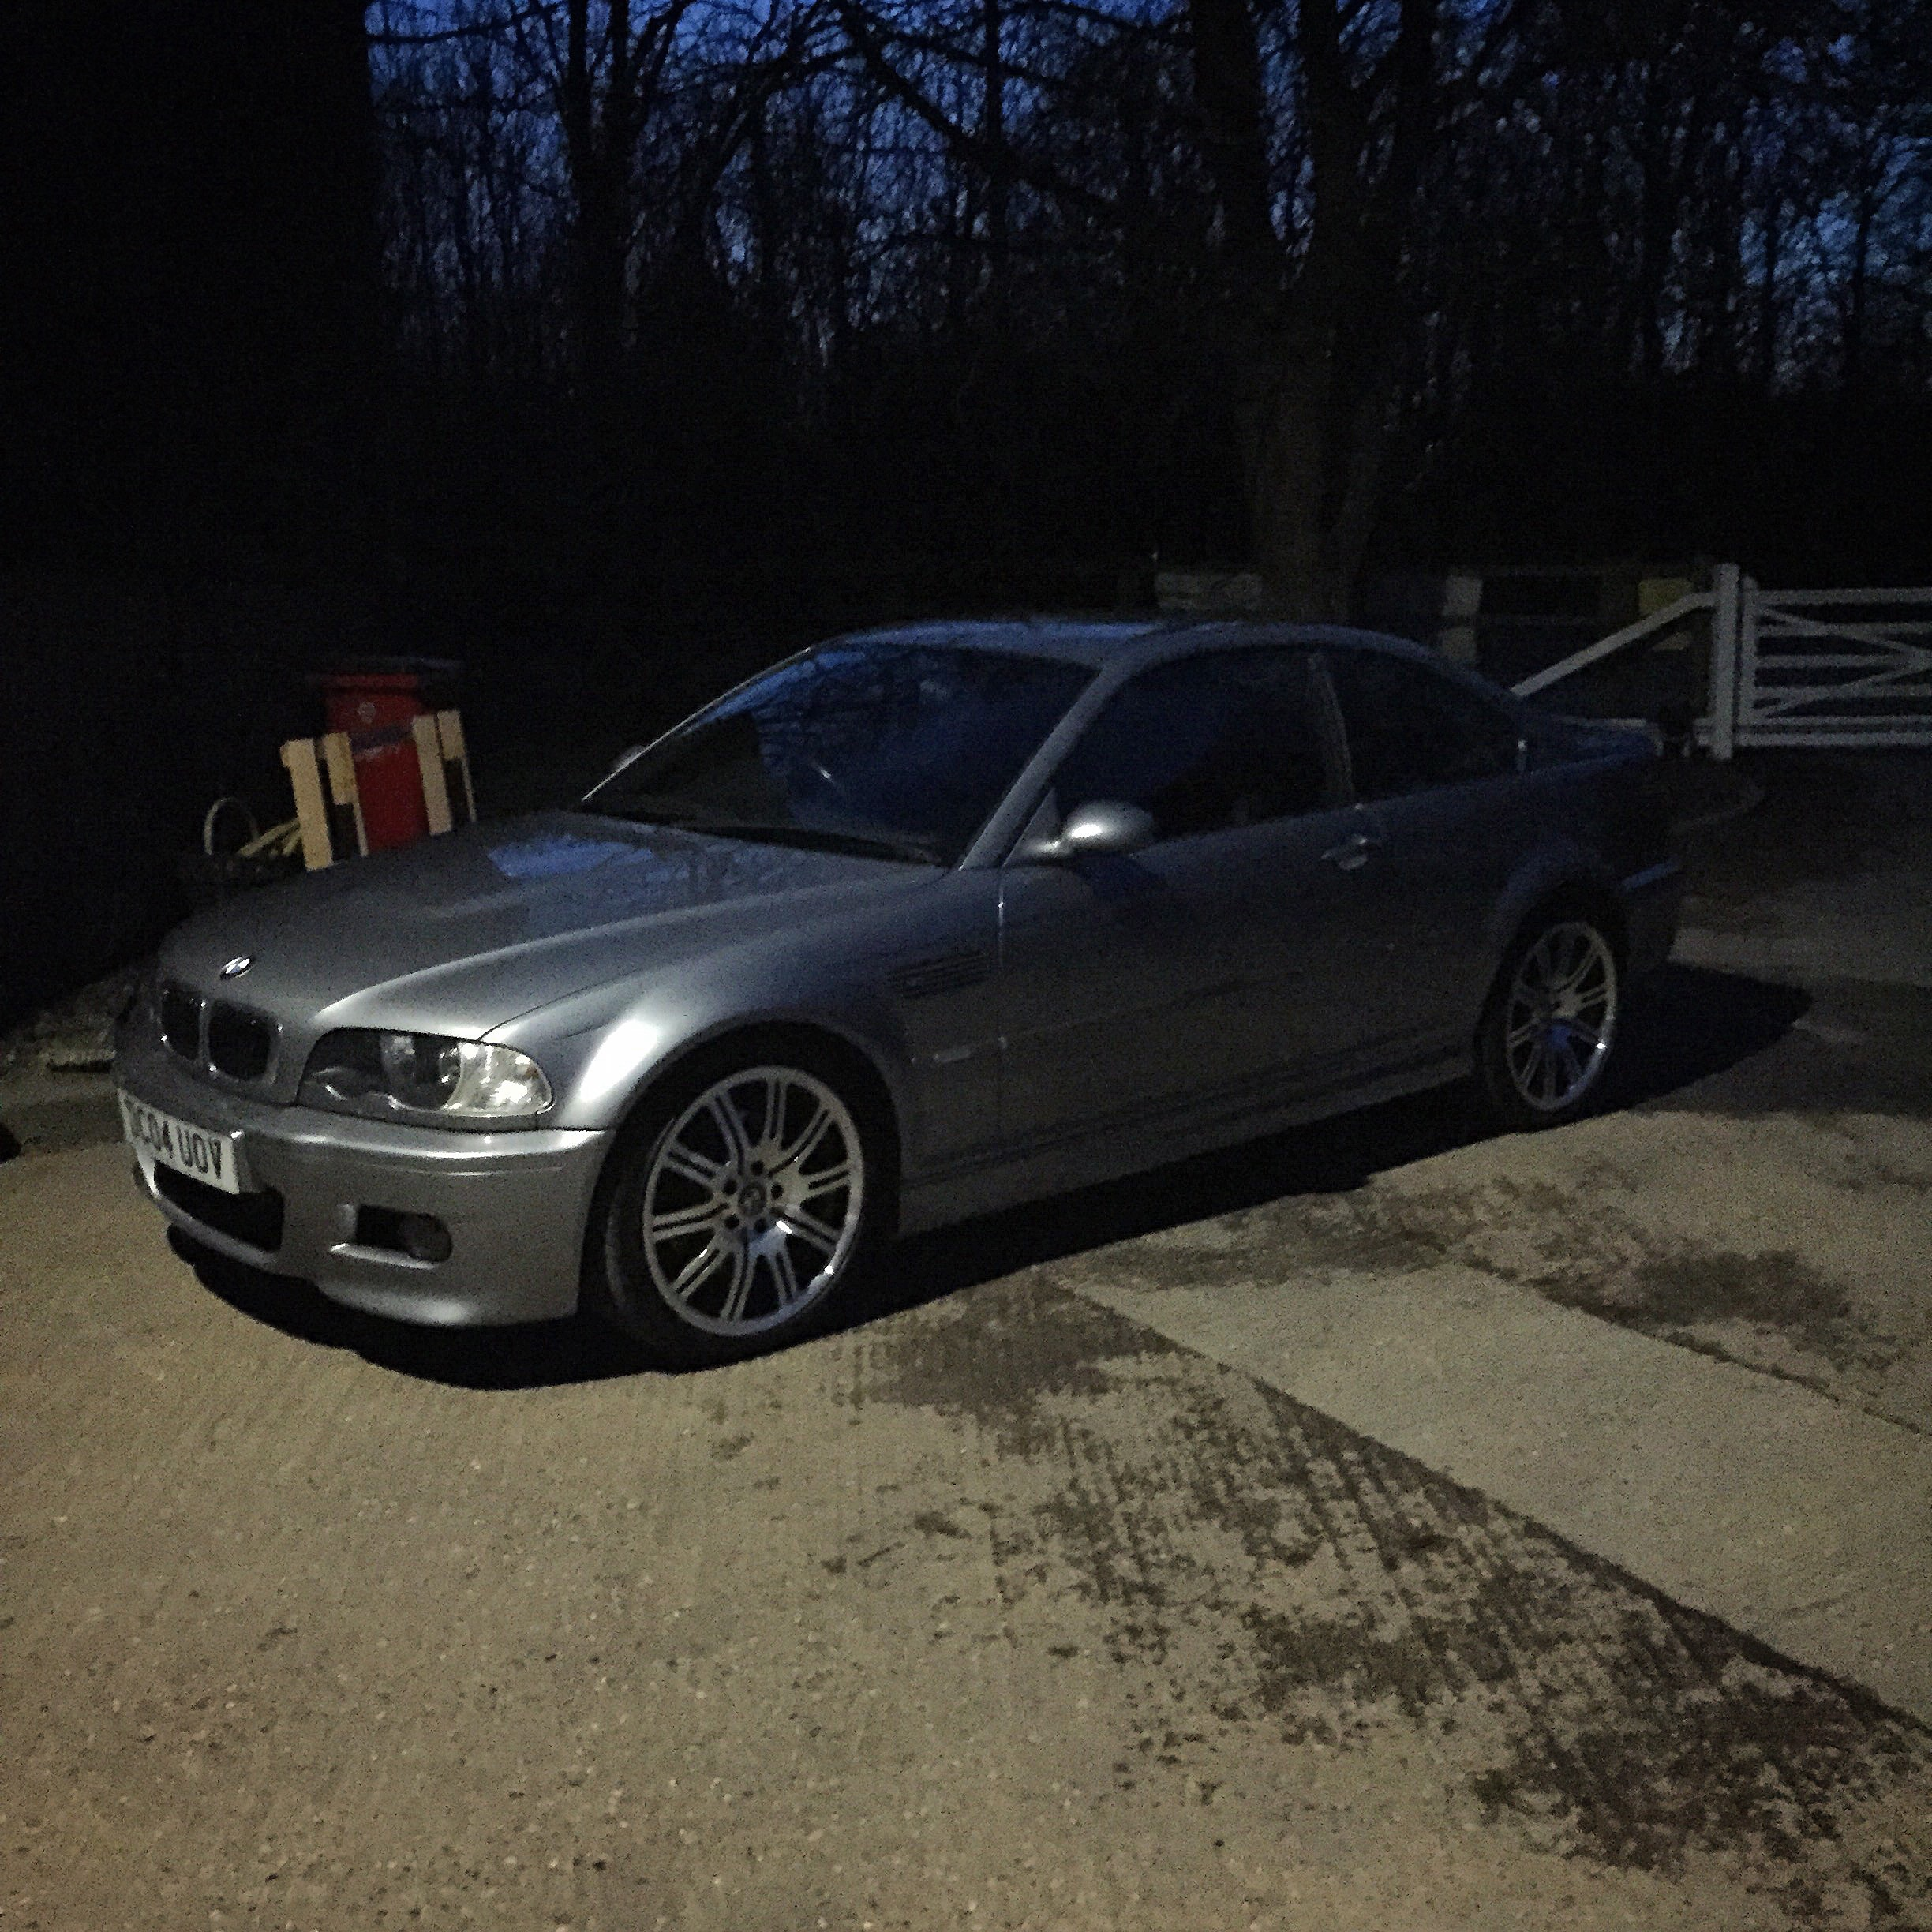 I'm now the proud owner of this BMW E46 M3. Grey, manual. So excited to  share more details (and better pics) with you guys!